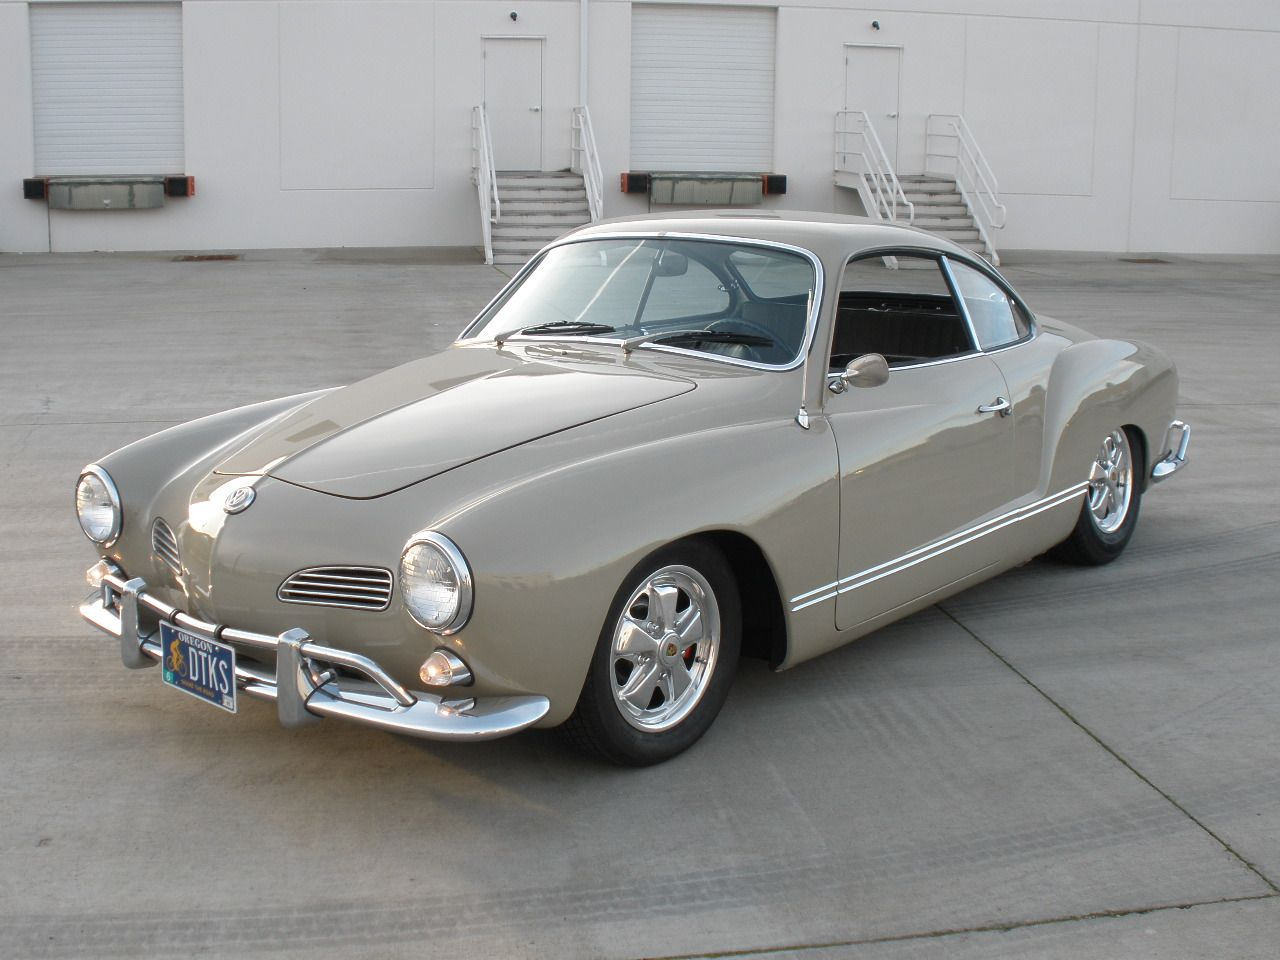 VW Karman Ghia on Pinterest | Volkswagen, Cars and One Day